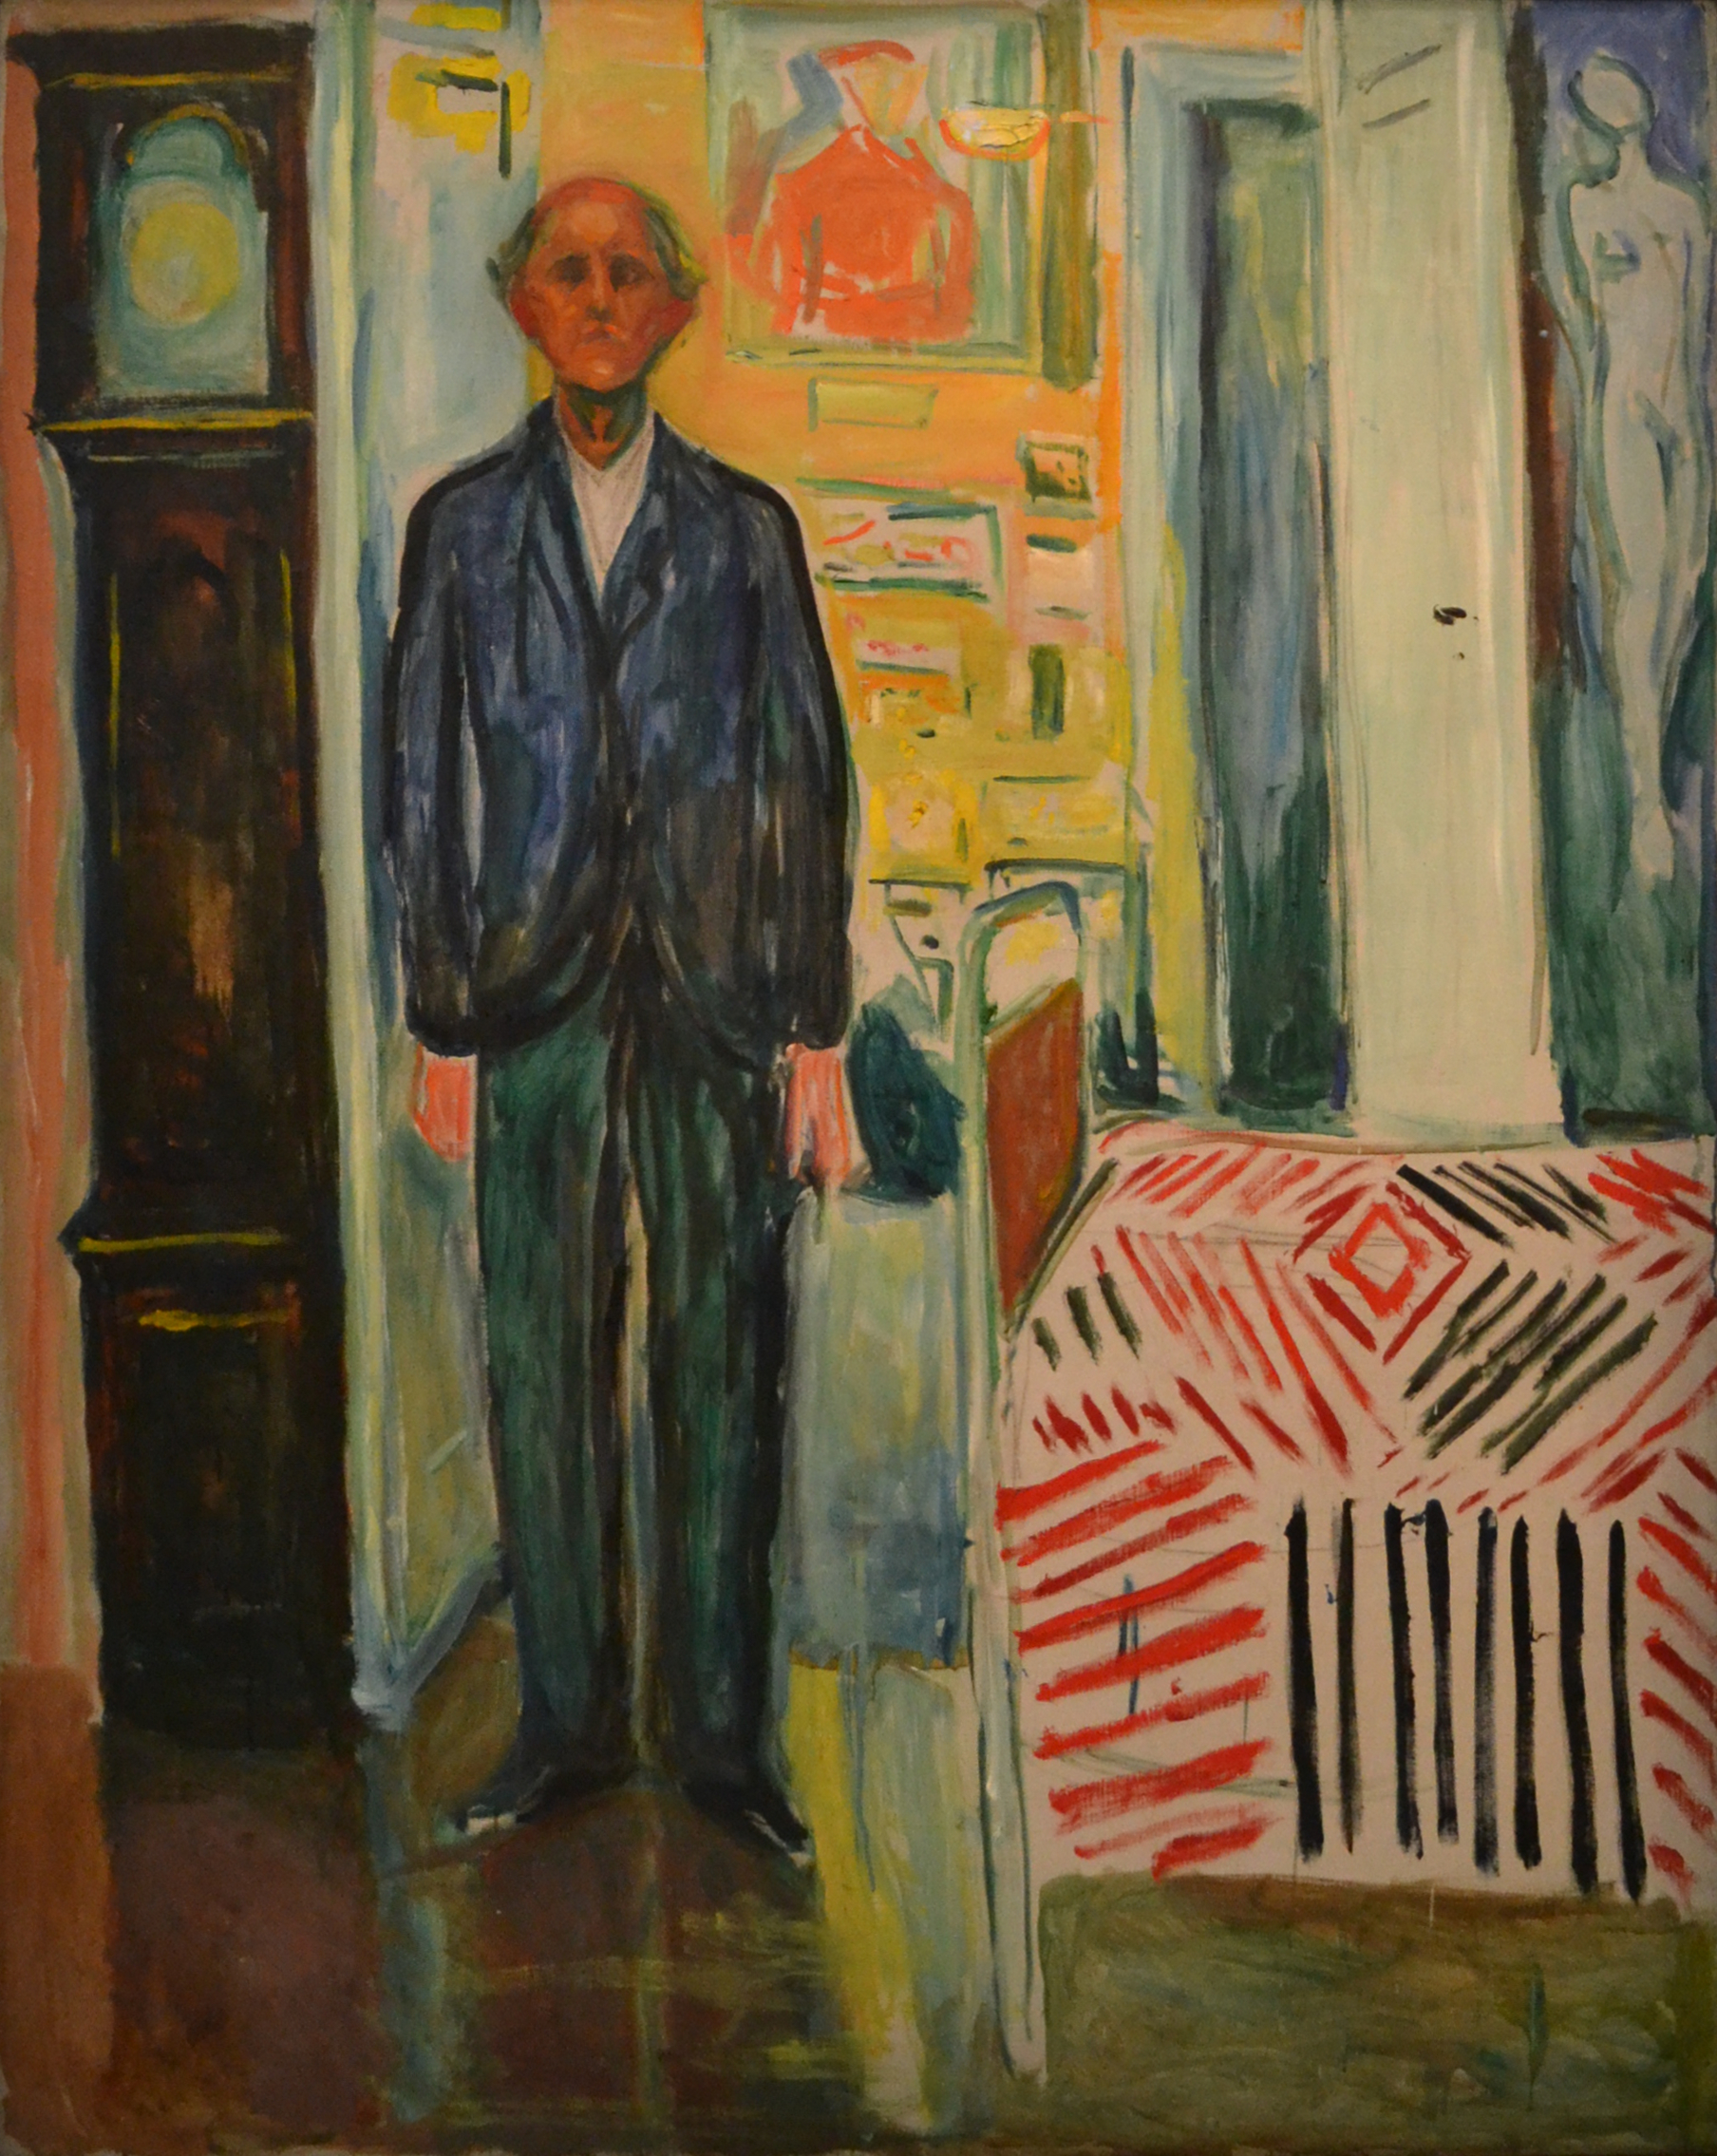 Edvard Munch: Self-Portrait. Between the Clock and the Bed. Oil on canvas, 1940-43. Photo © Munchmuseet